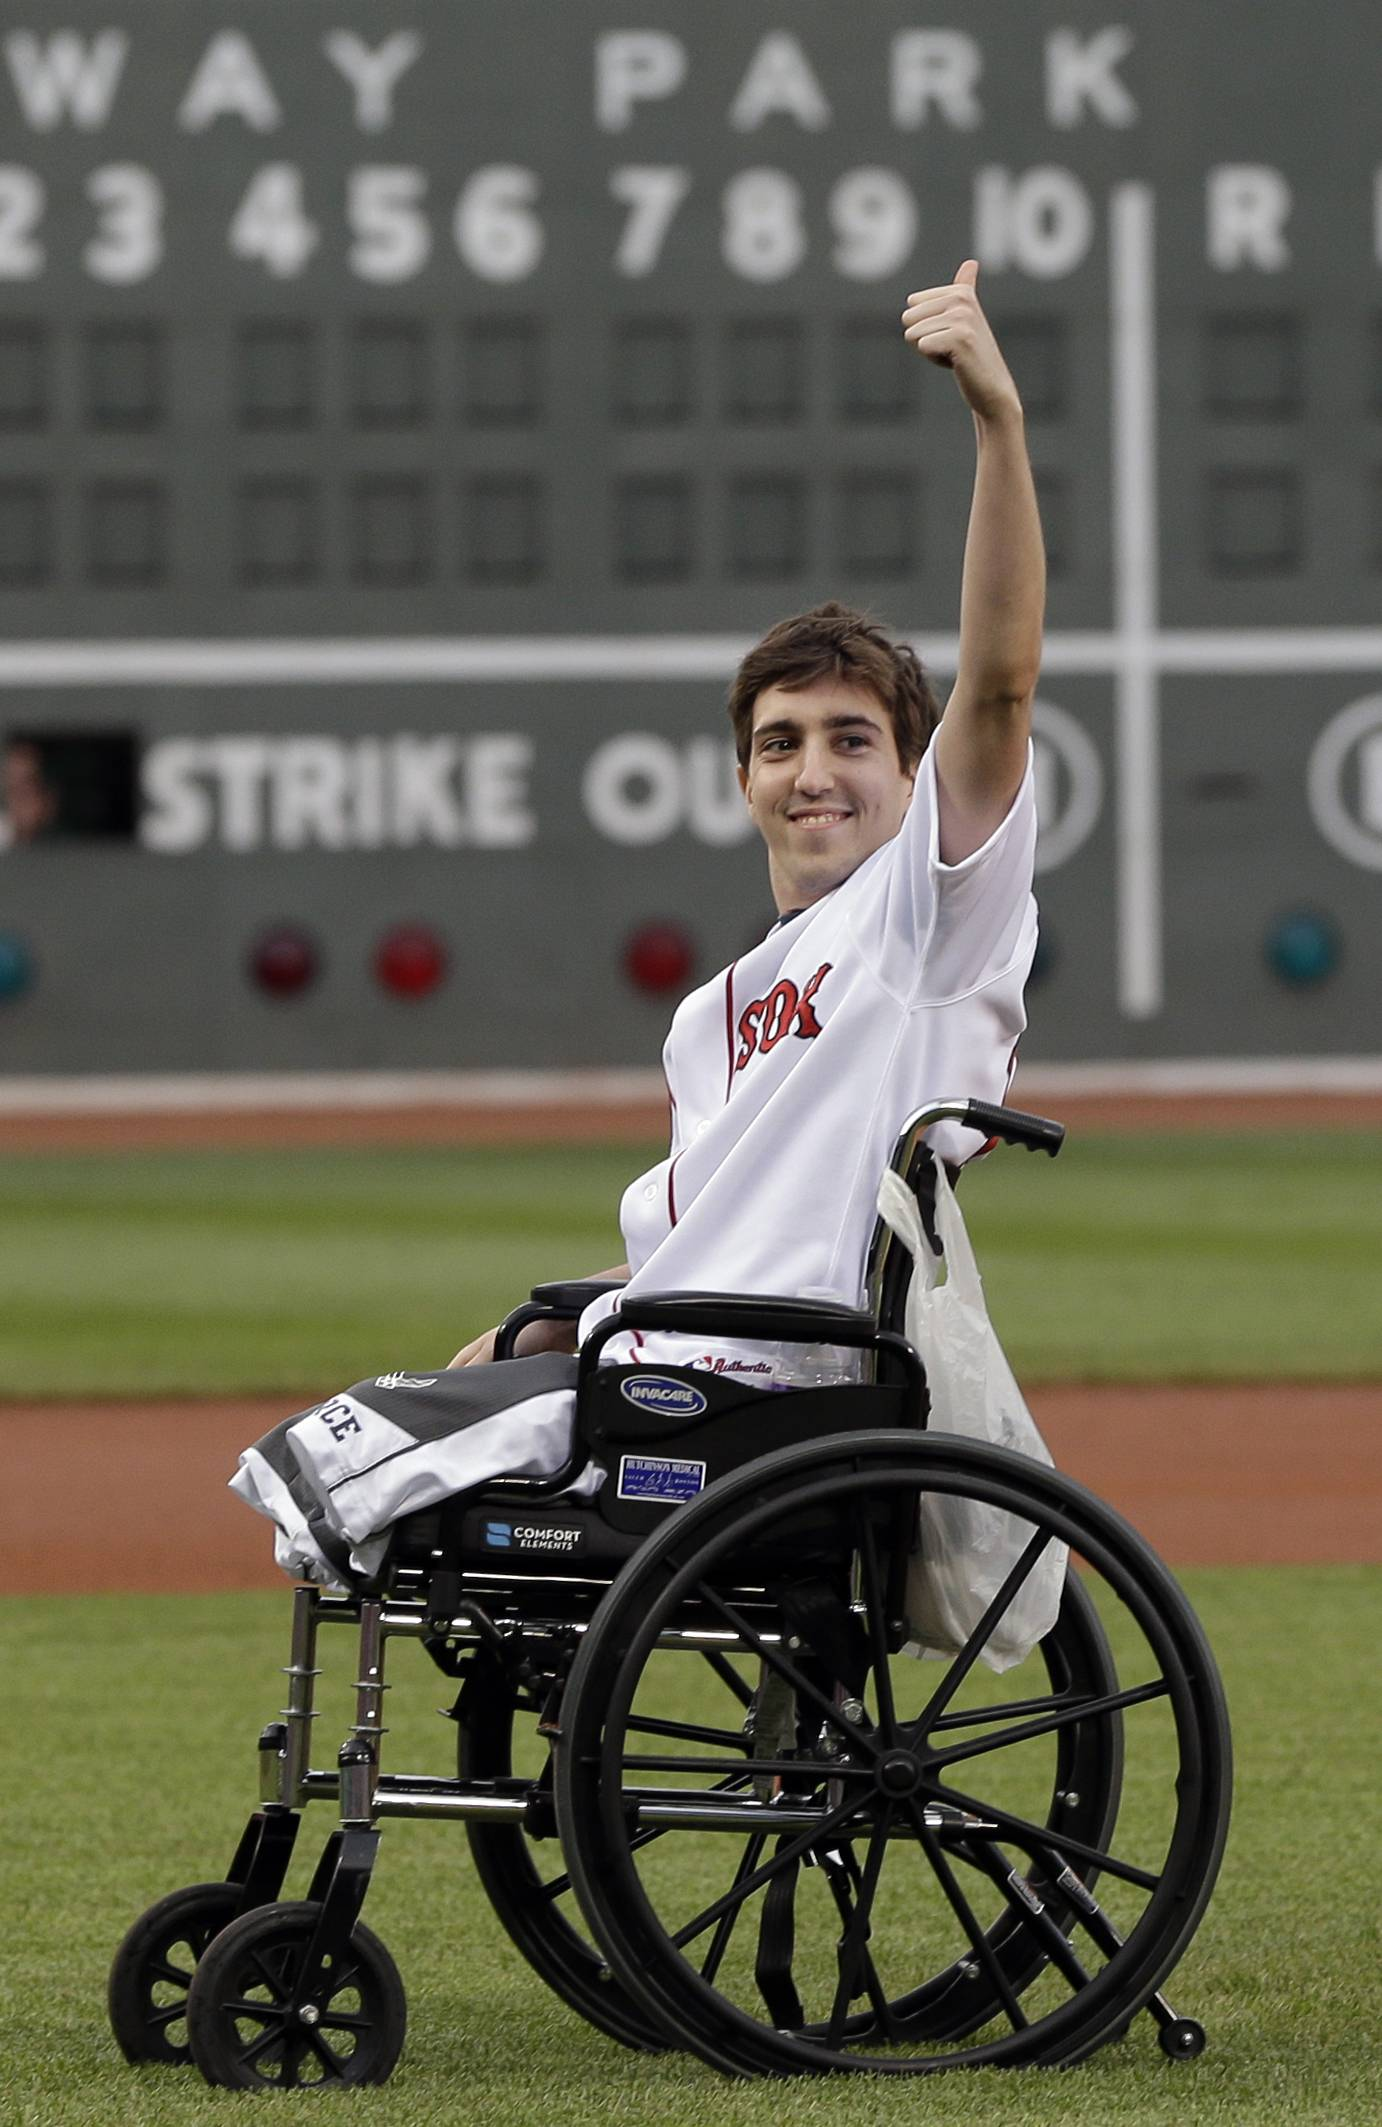 Boston Marathon bombing survivor Jeff Bauman acknowledges cheering fans before throwing out a ceremonial first pitch at Fenway Park May 28, 2013. Bauman, who lost both legs in the bombings and then helped authorities identify the suspects, is engaged and an expectant father. He and his fiancé, Erin Hurley, say the baby is due July 14.